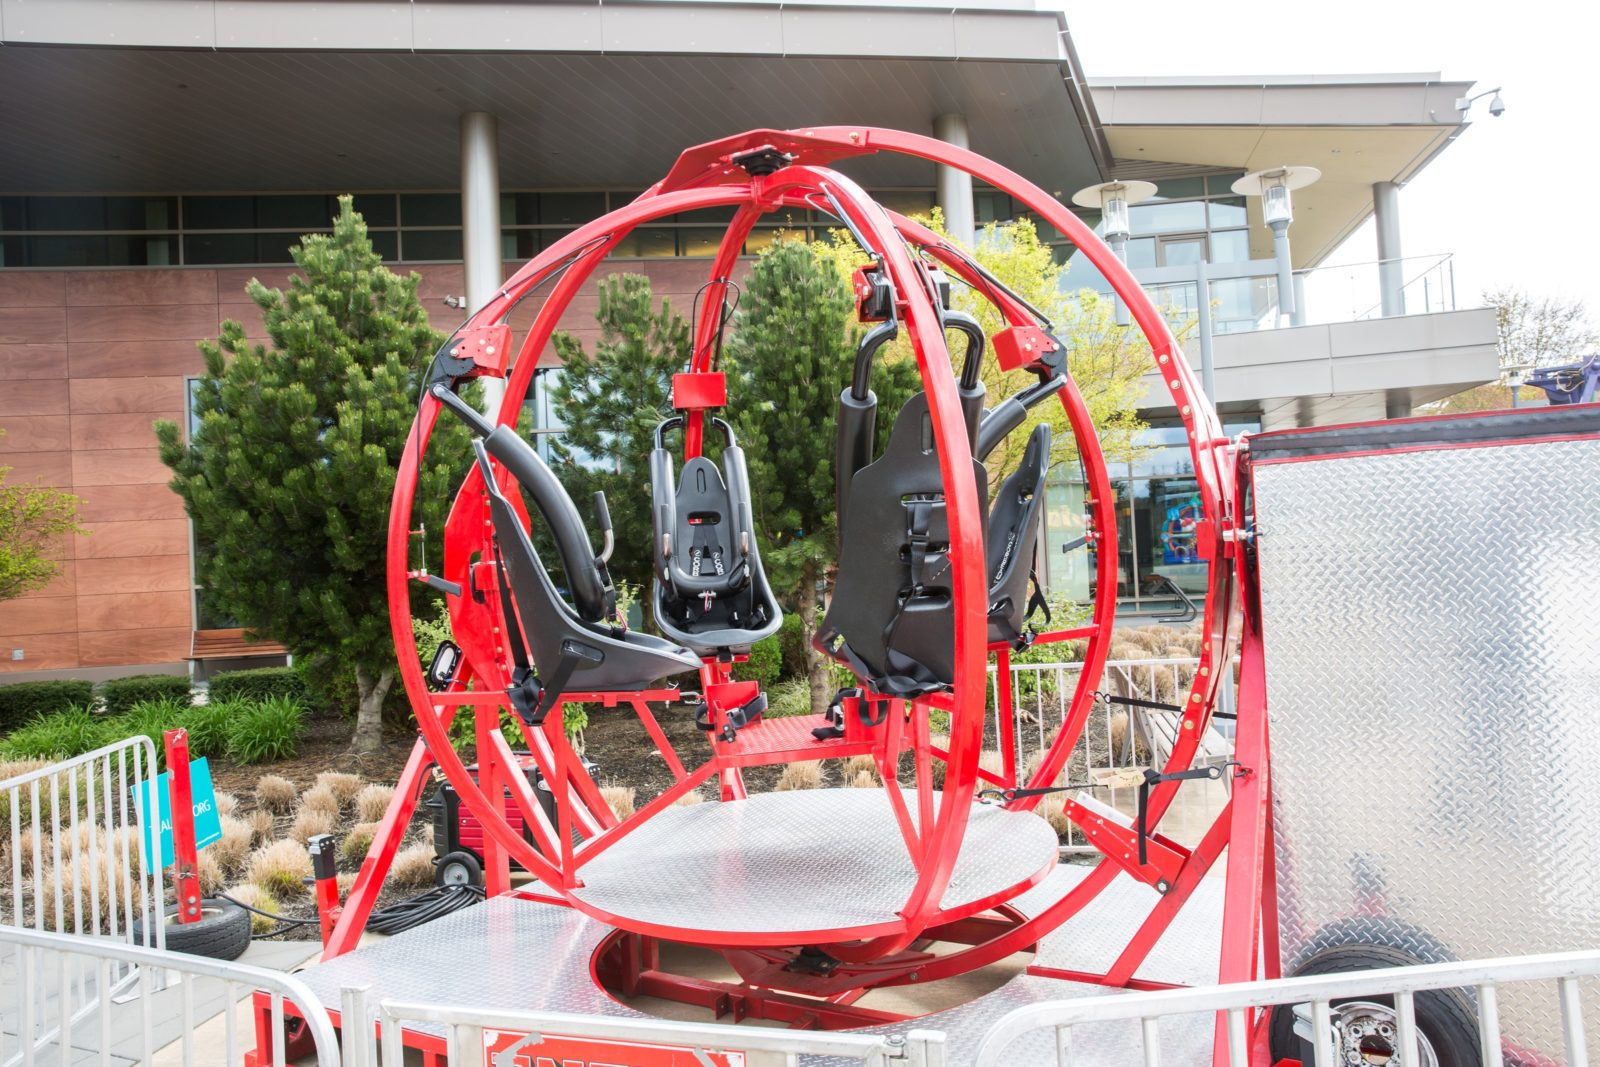 Rentable Human Gyroscope Ride